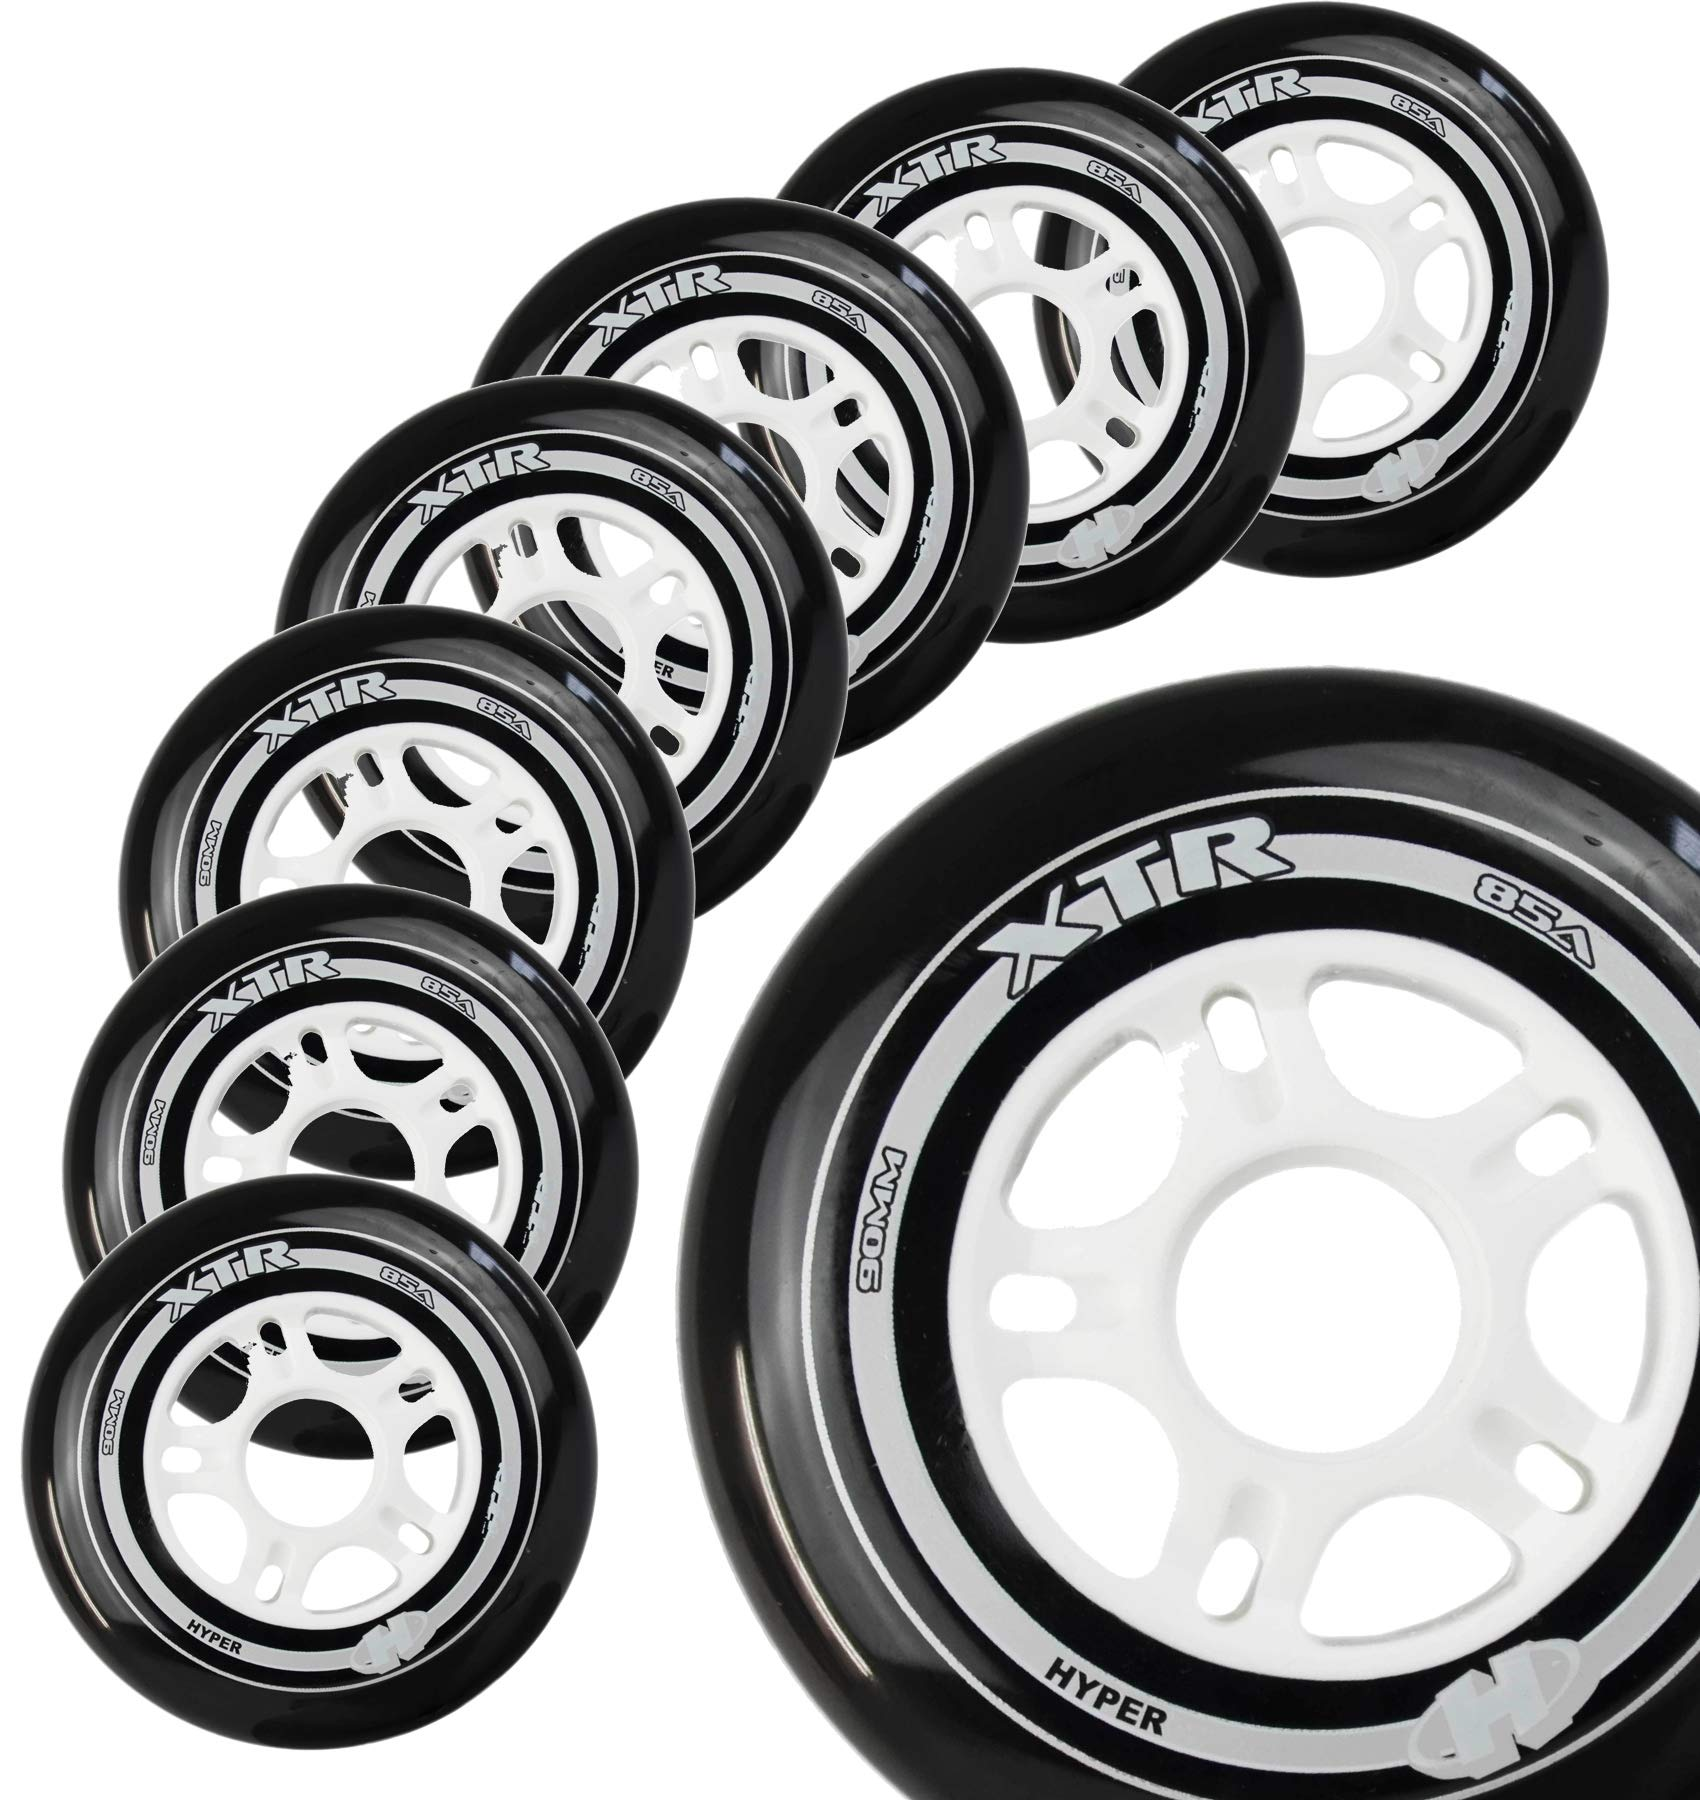 Inline Skate Wheels Hyper XTR - 8 Wheels - 84A - Sizes: 84MM, 90MM, 100MM - Speed Skating, Fitness and Recreational Wheels (Black, 100MM)